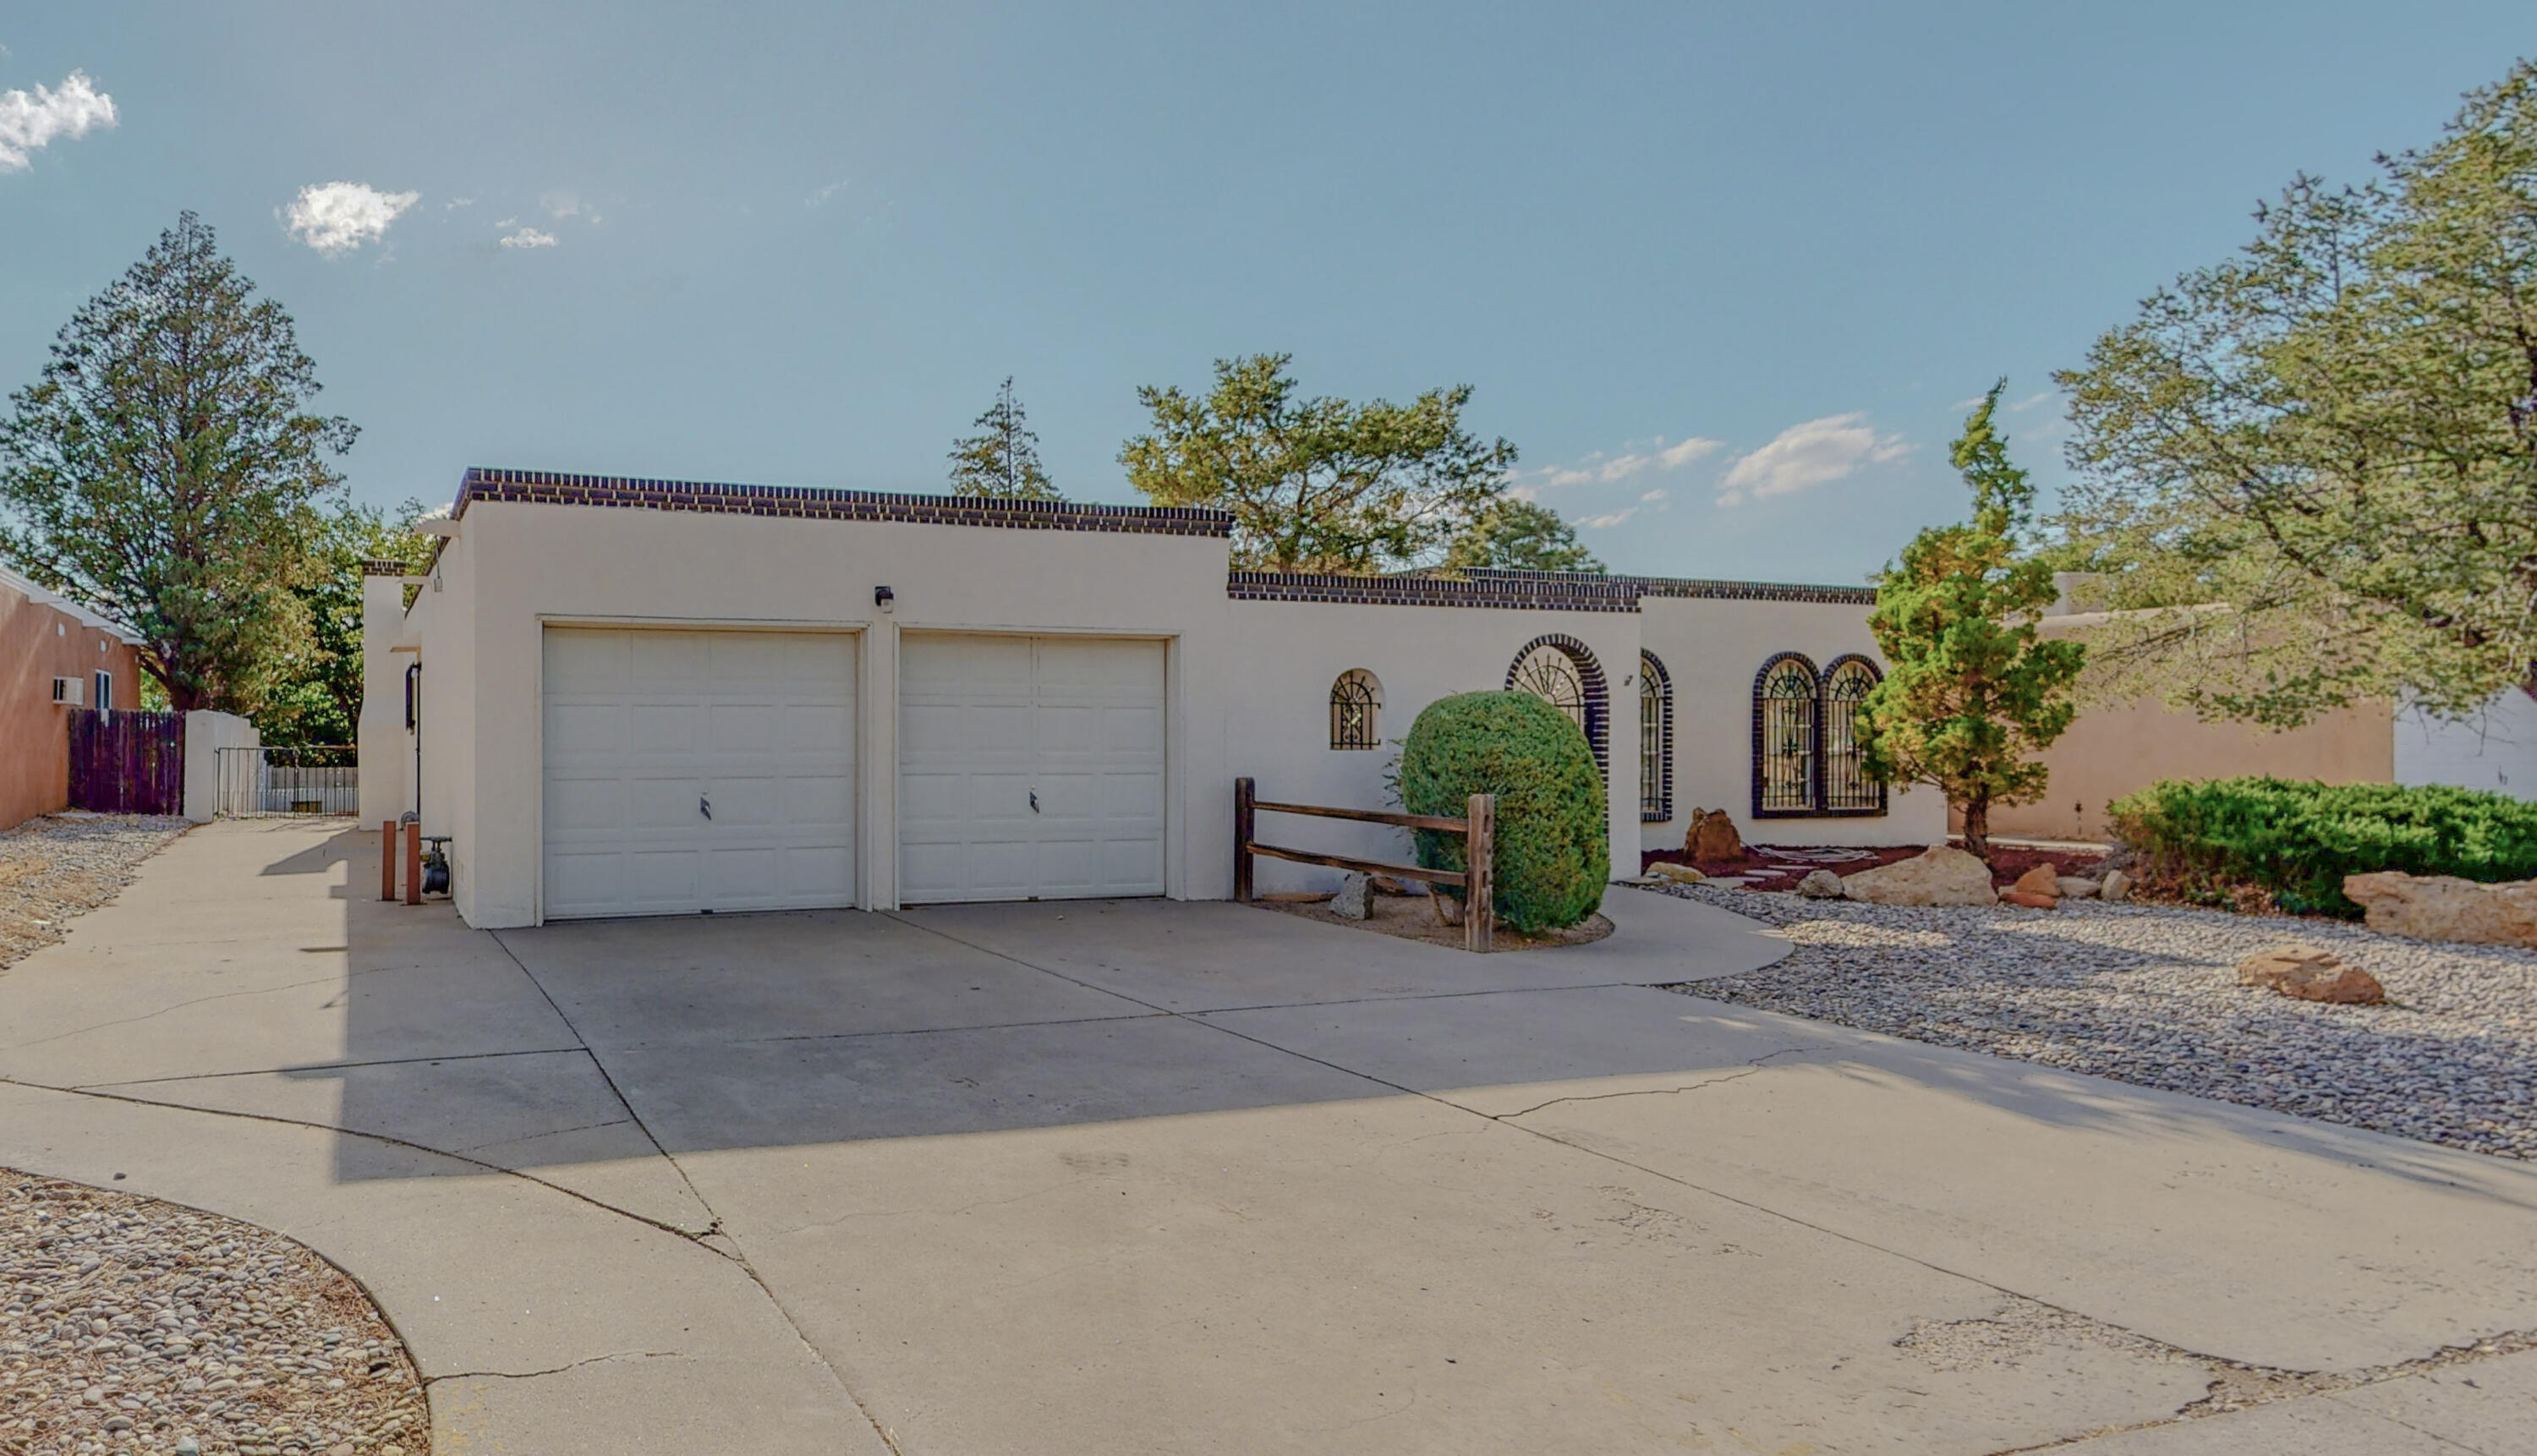 Now is your chance to own an updated legacy home, in the Eldorado school district with plenty of space, refrigerated air and a 2 car garage.  Not to mention, bring your RV for side  and backyard access.  Great size backyard with covered patio is sure to delight for those Summer get togethers or hang out in your front private and secured courtyard!  Newer TPO Roof, fresh paint throughout.  Two living areas, oversized garage, Mud room room for your washer and dryer also features a utility sink! There is also a small office area off the second living area that could be used as a hobby room.  Owner's suite features a walk-in closet and bathroom.  Park only a couple of blocks away, centrally located with shopping, eating and entertainment nearby, don't let this one slip away!